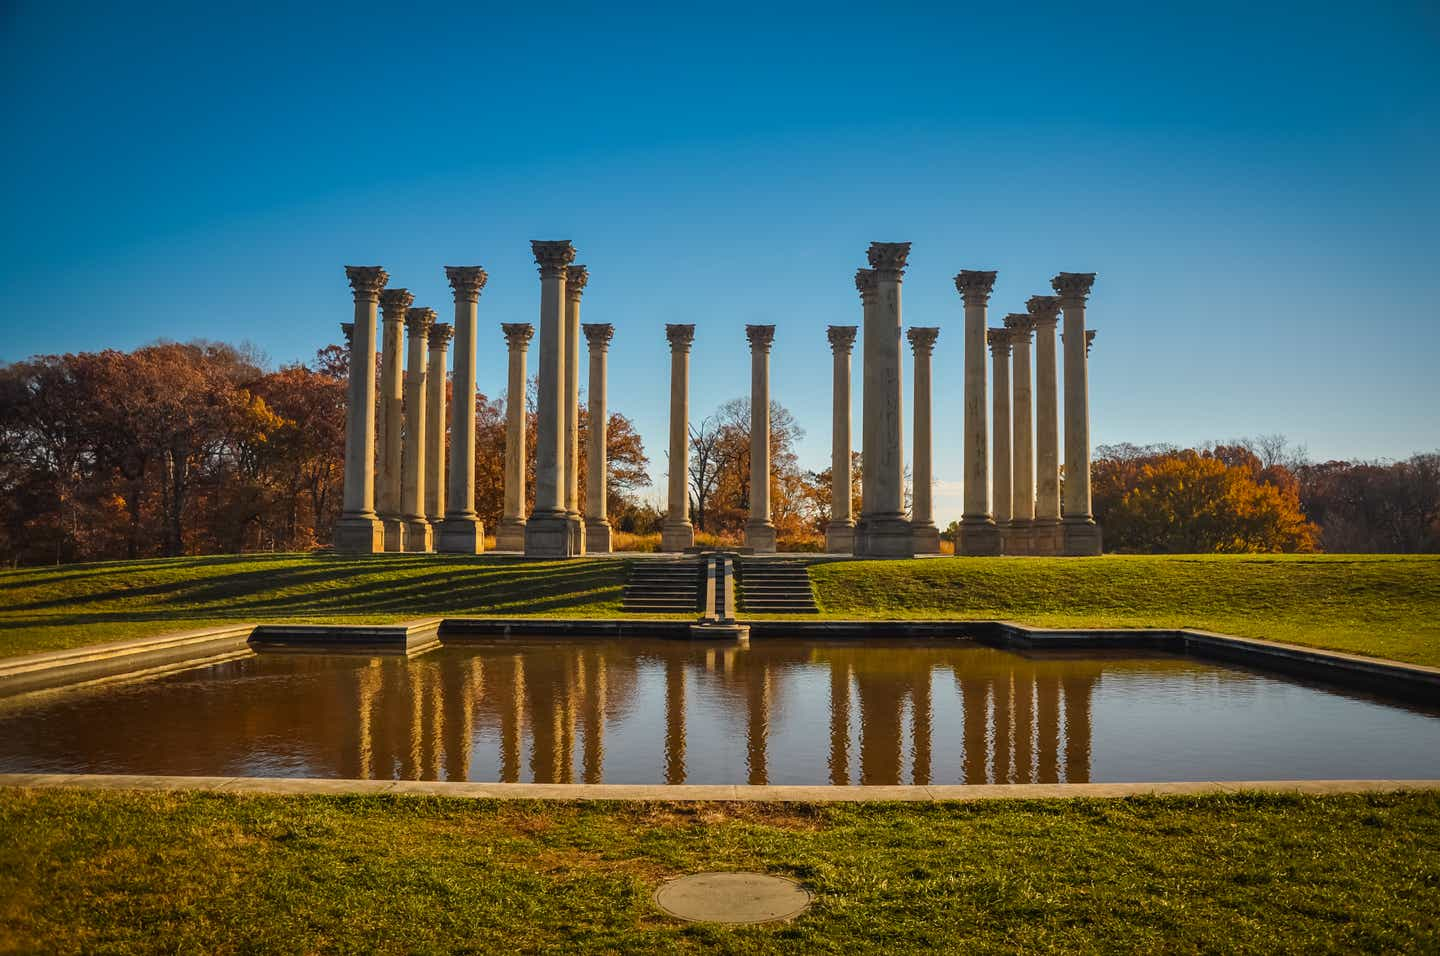 The U.S. National Arboretum in Washington, D.C., during fall